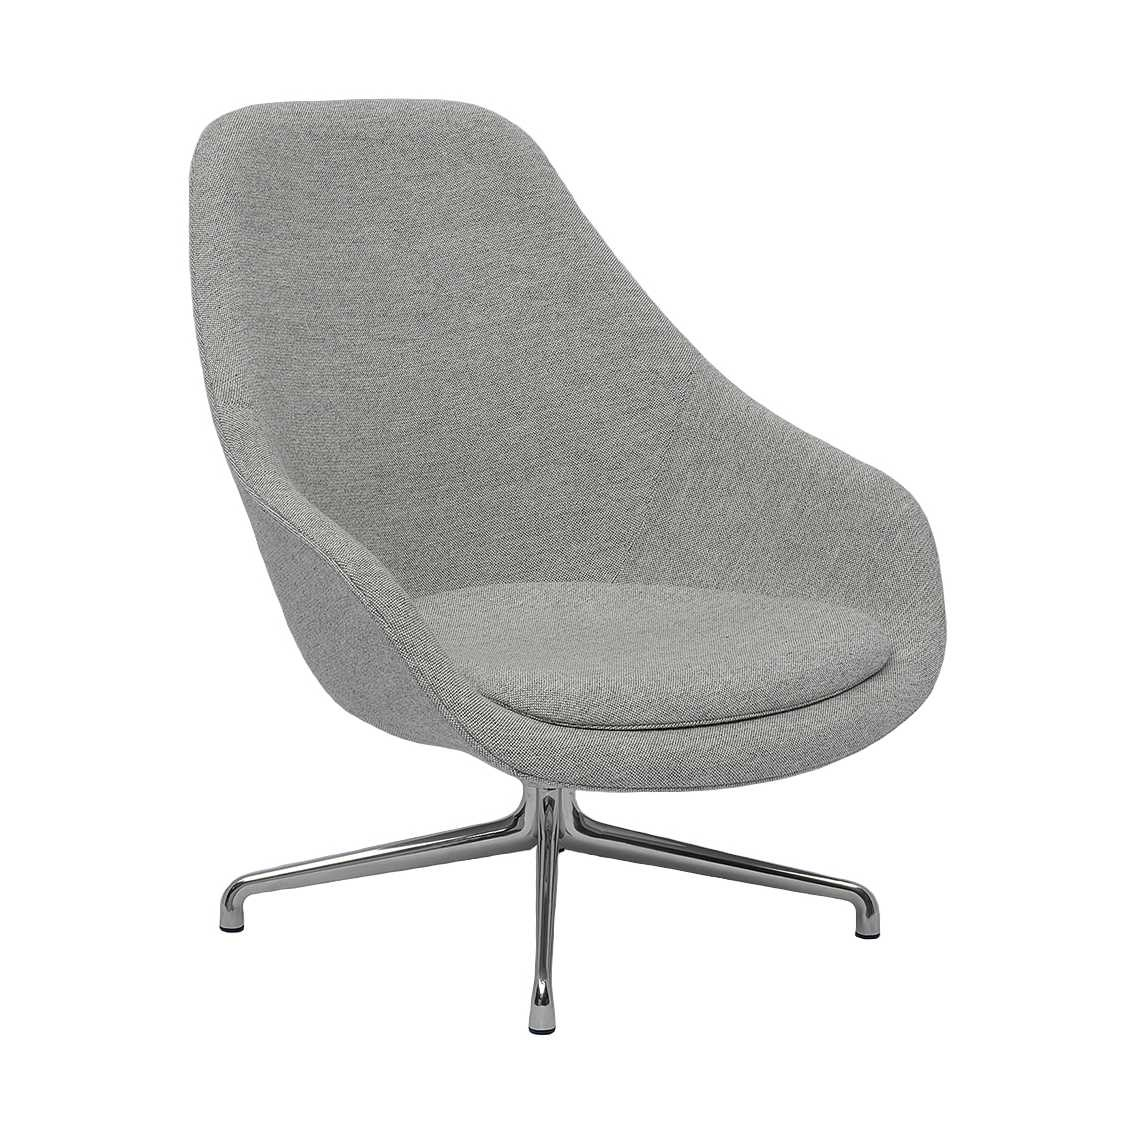 Hay Lounge Stoel.About A Lounge Chair High Aal91 Nordic New